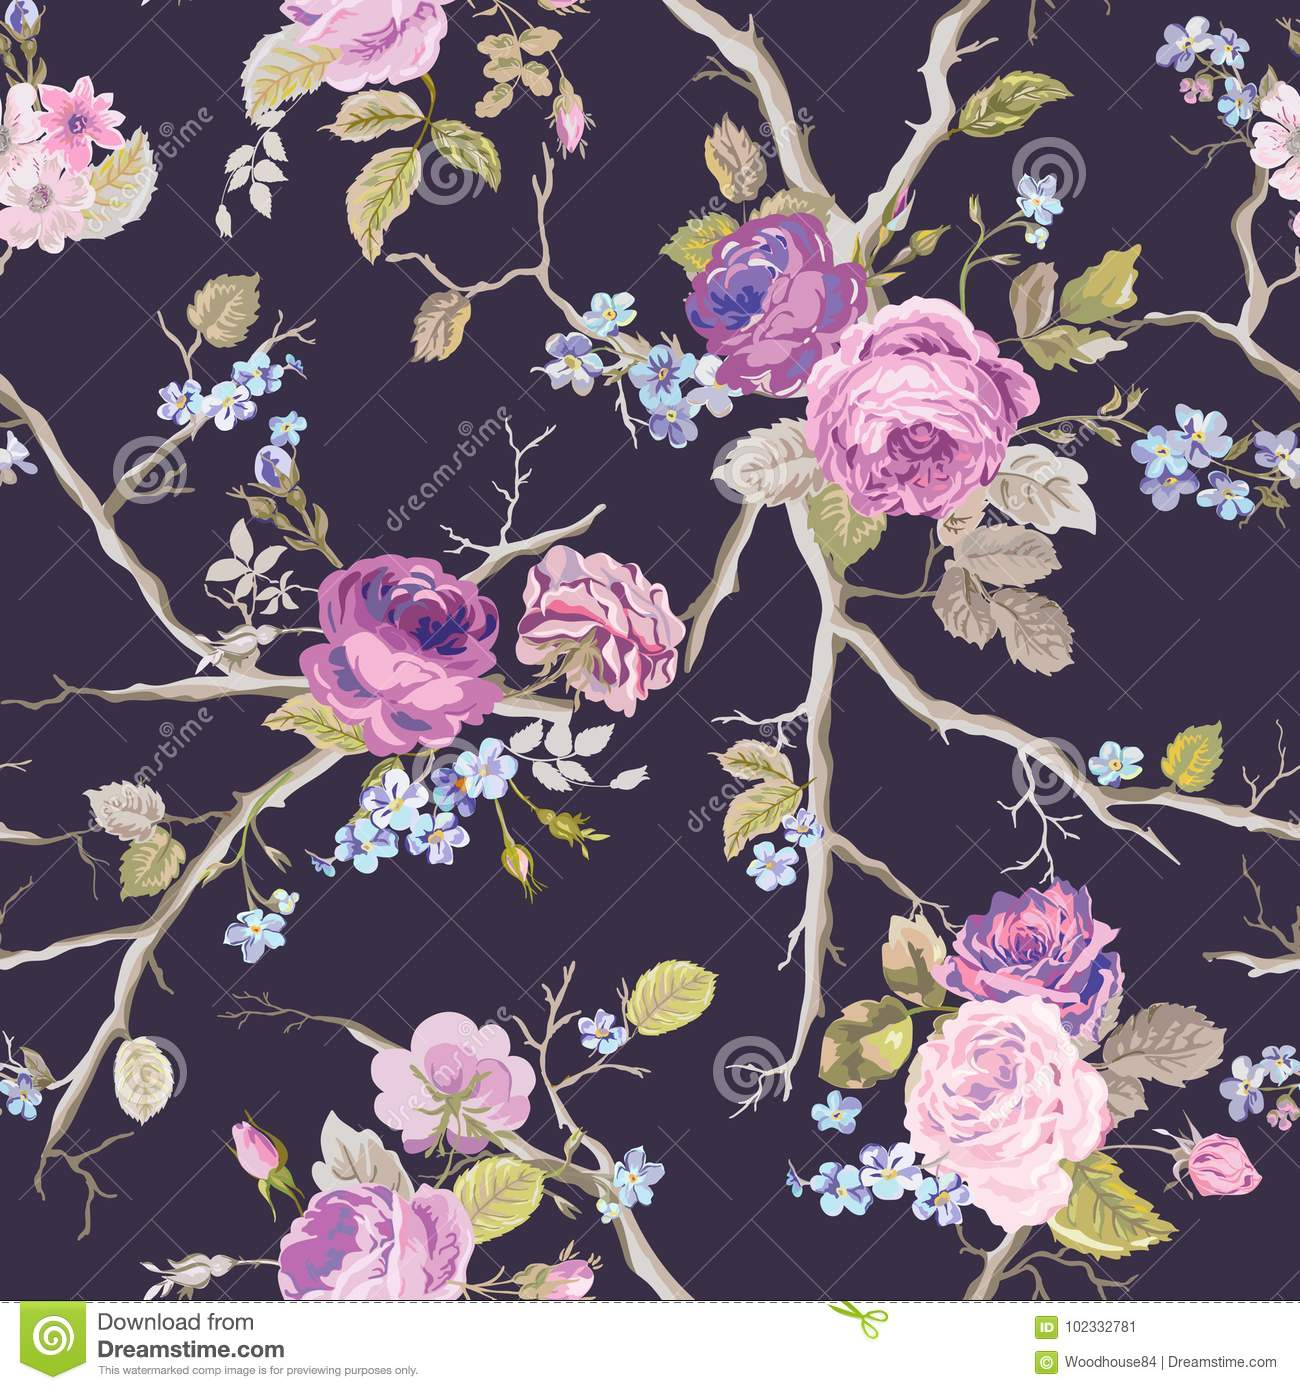 Violet Roses Flowers Texture Background seamless blom- modell